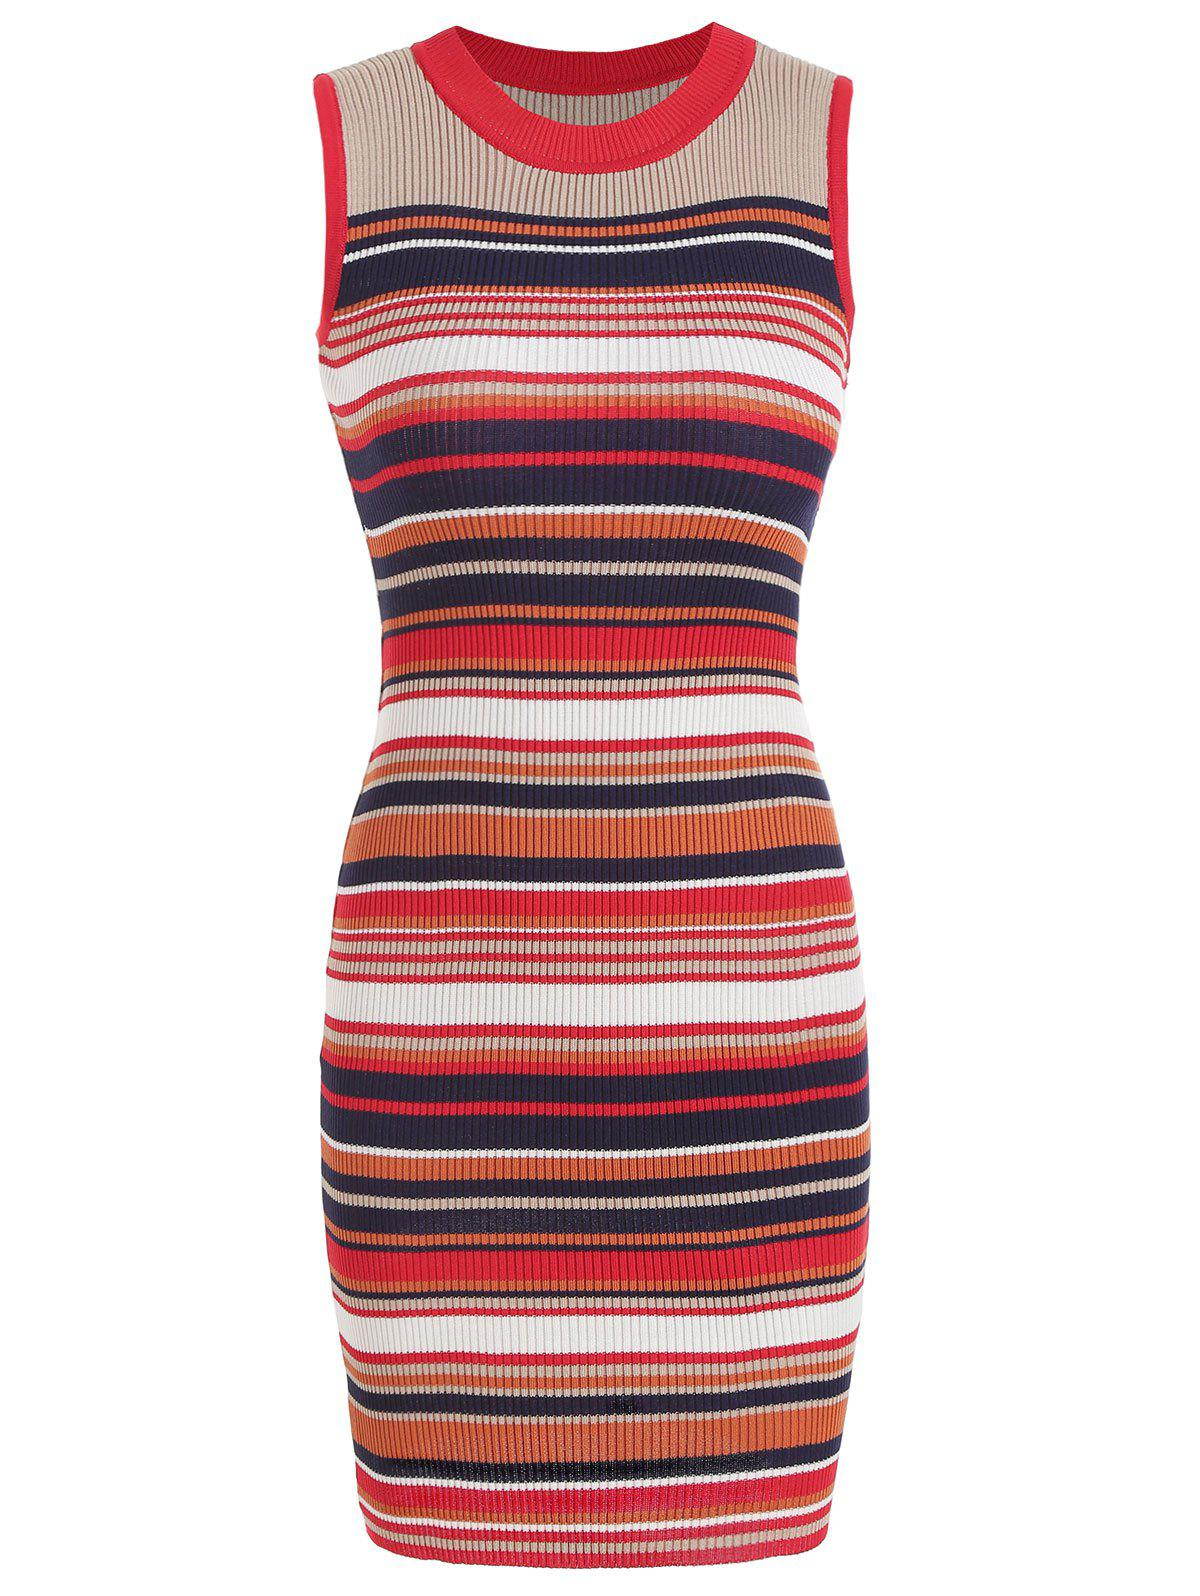 Shop Striped Knit Bodycon Dress